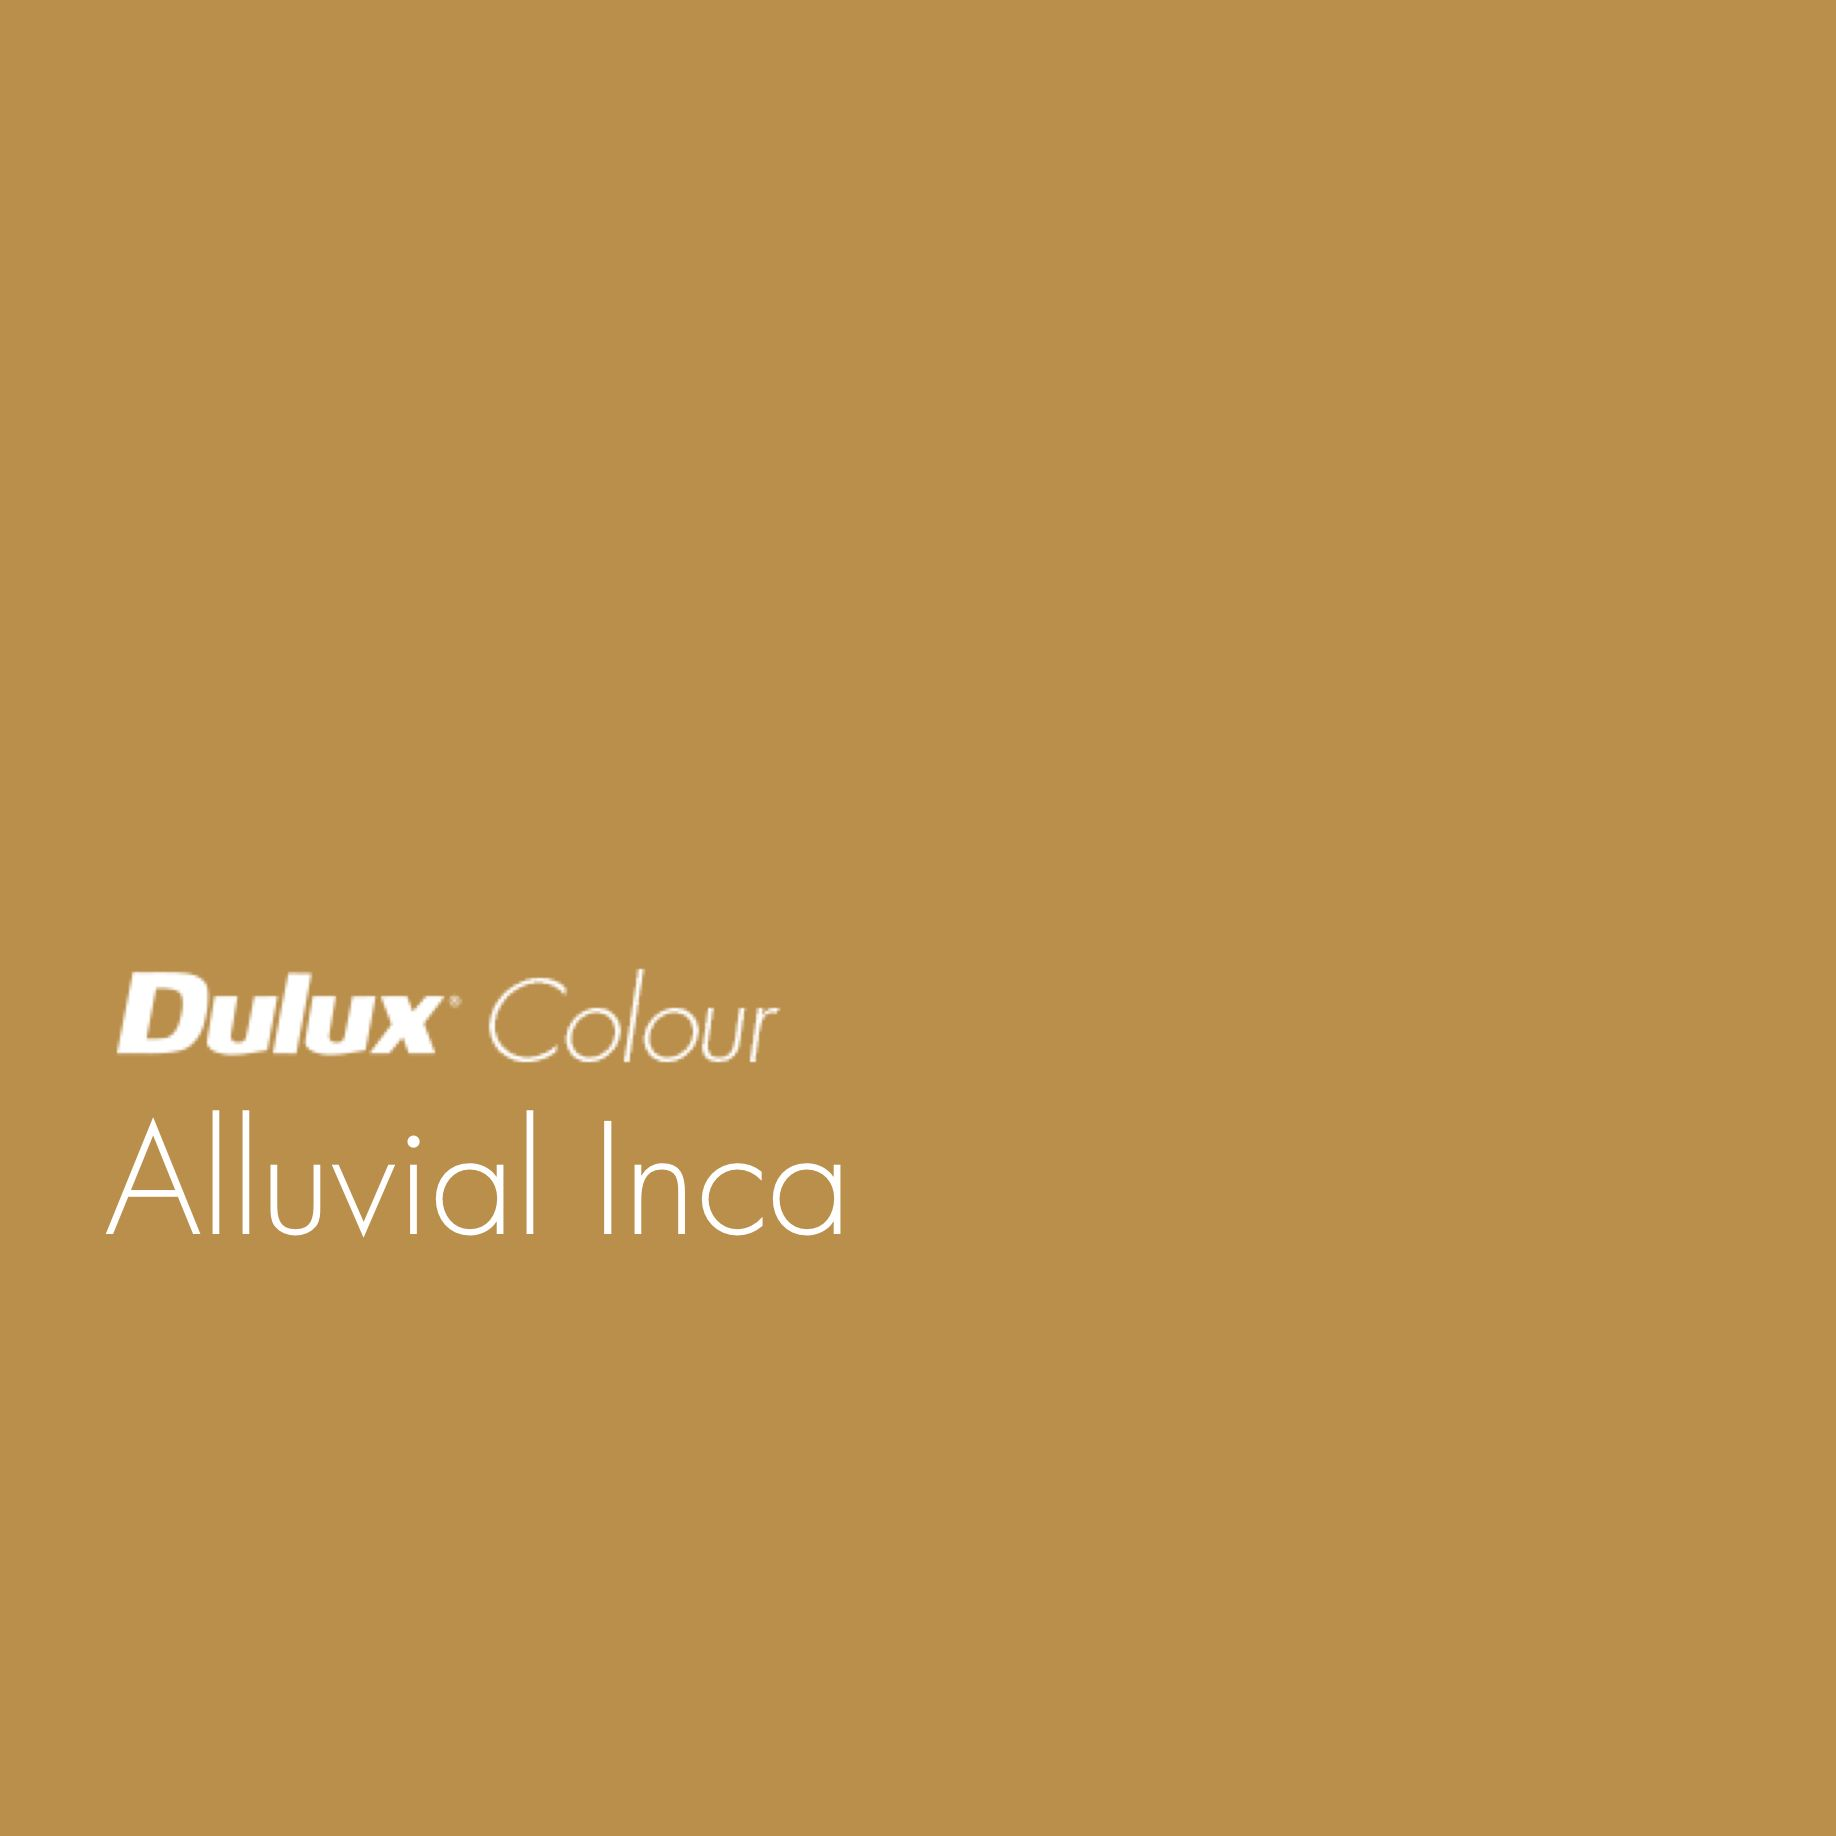 I just found my perfect duluxcolour discover yours with